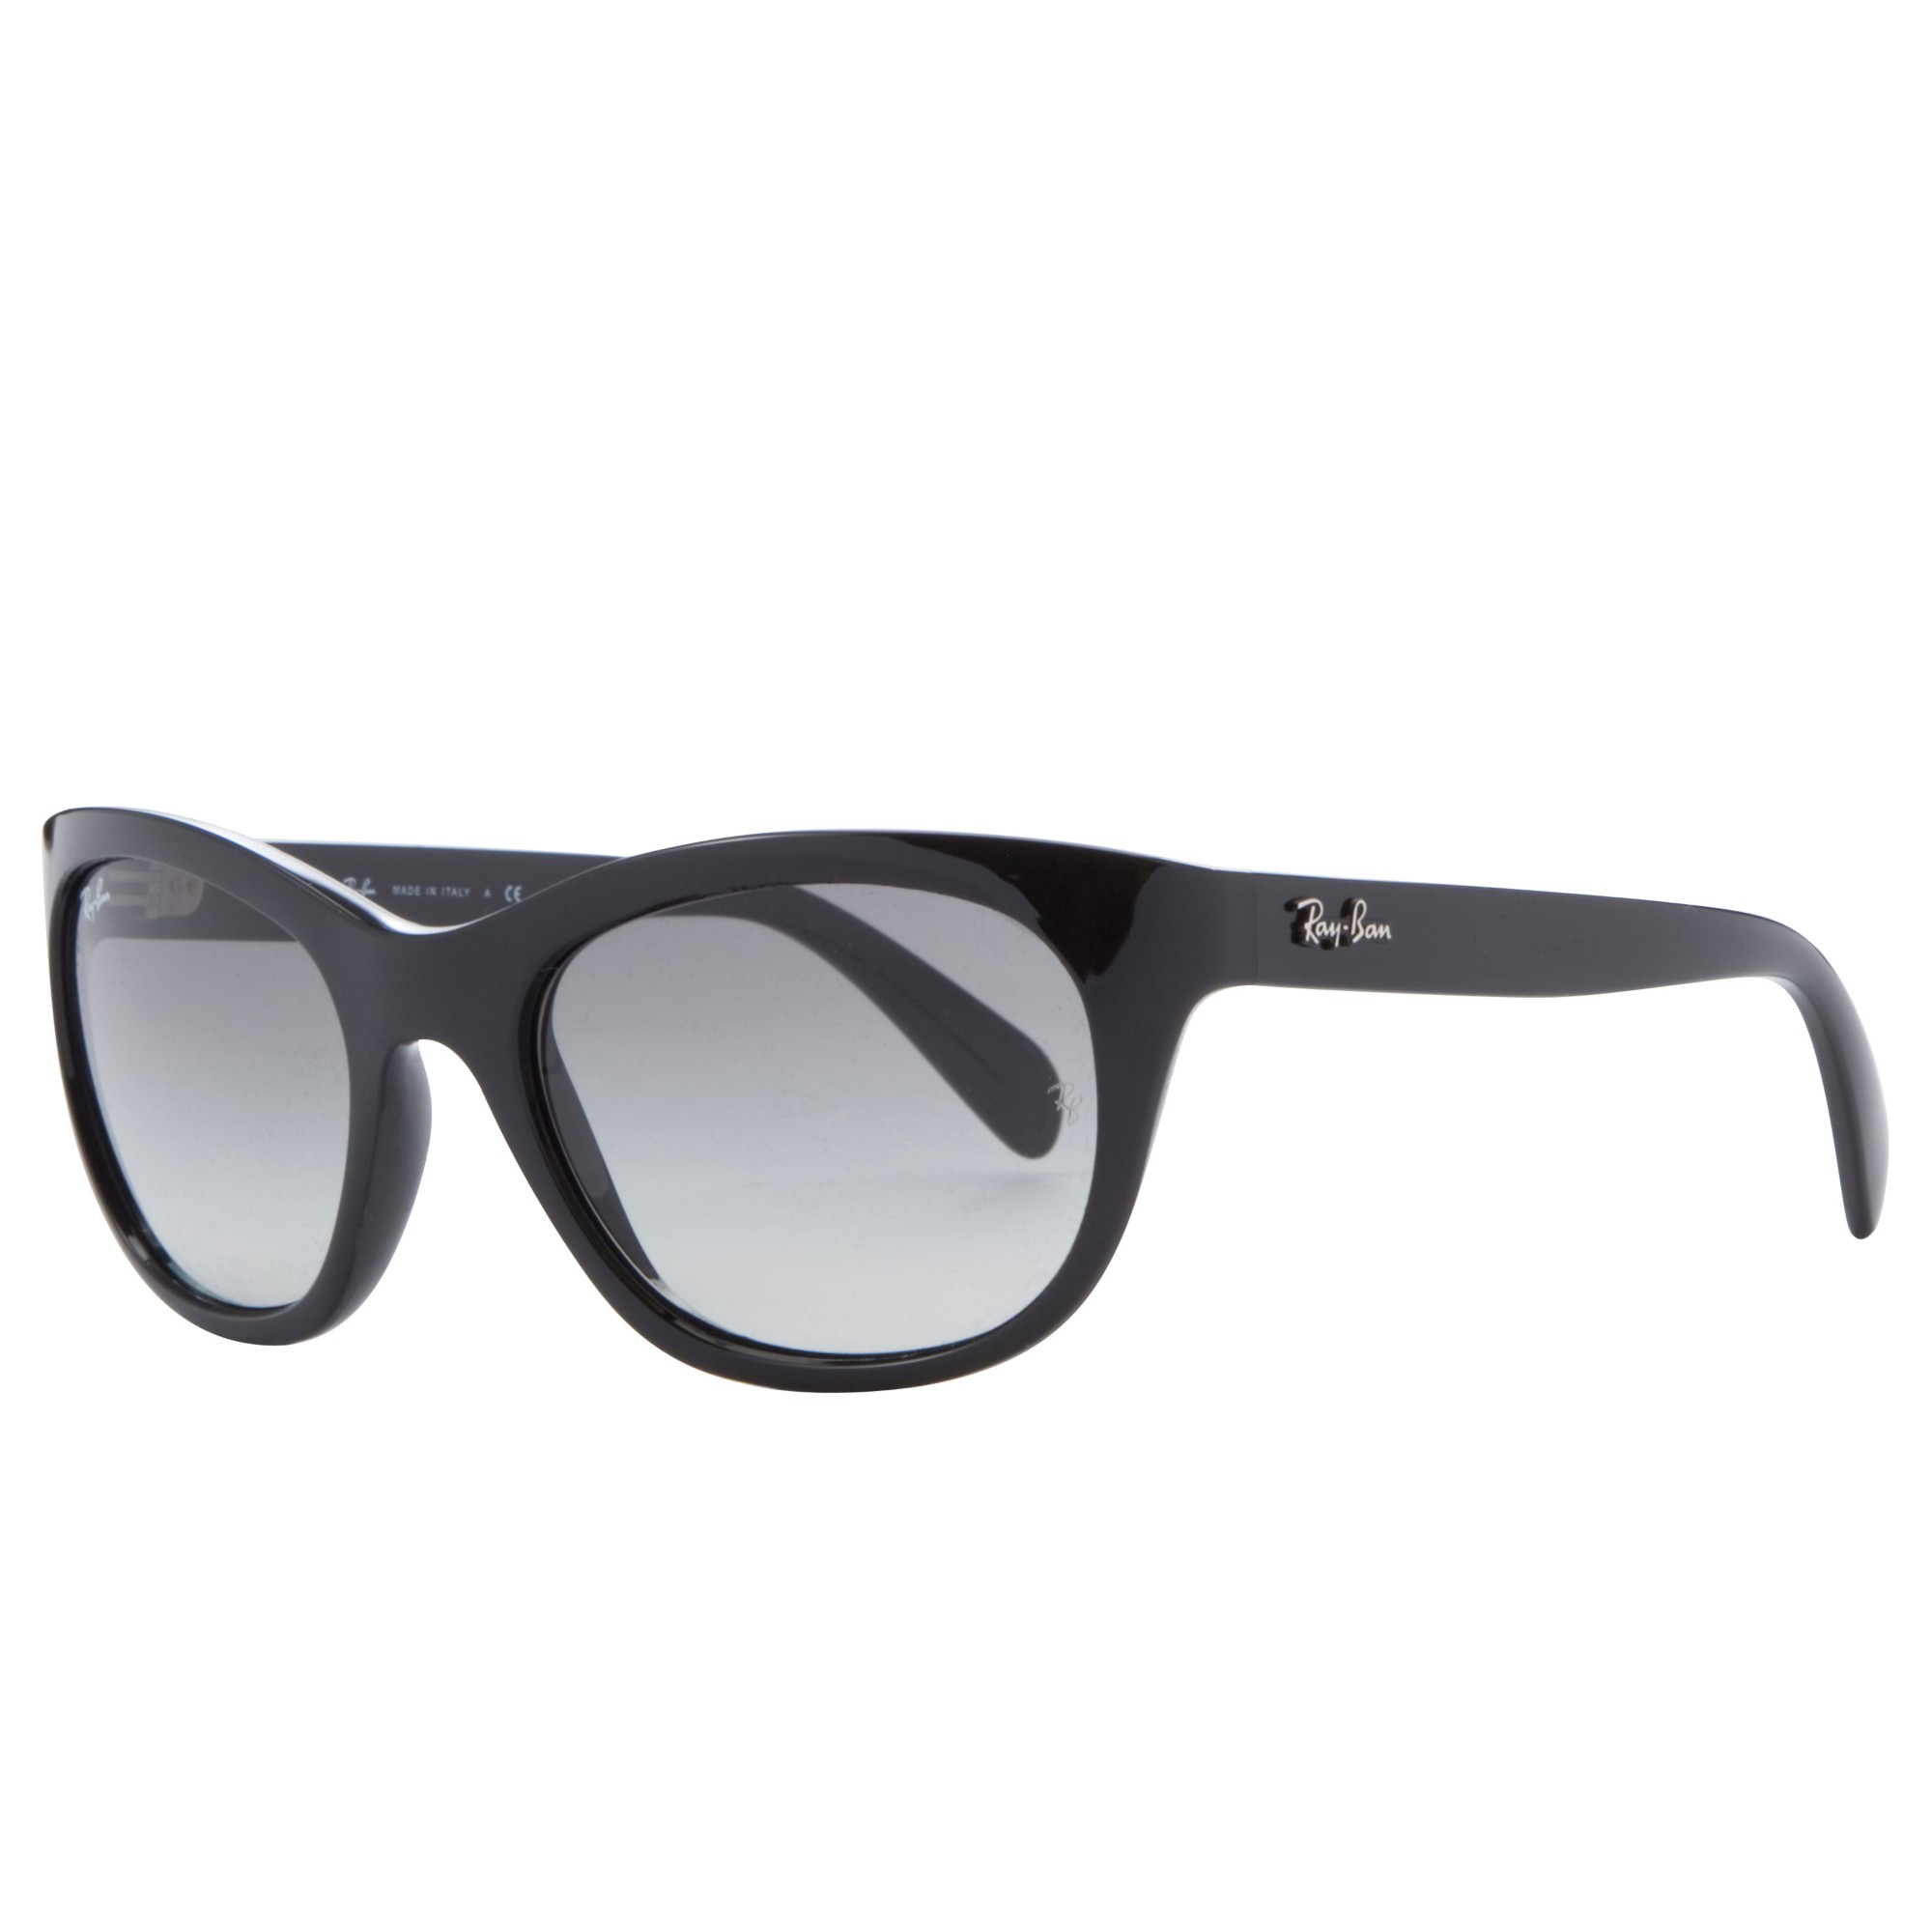 9654f9fcd0d Ray Ban Sunglasses Oval Face « Heritage Malta